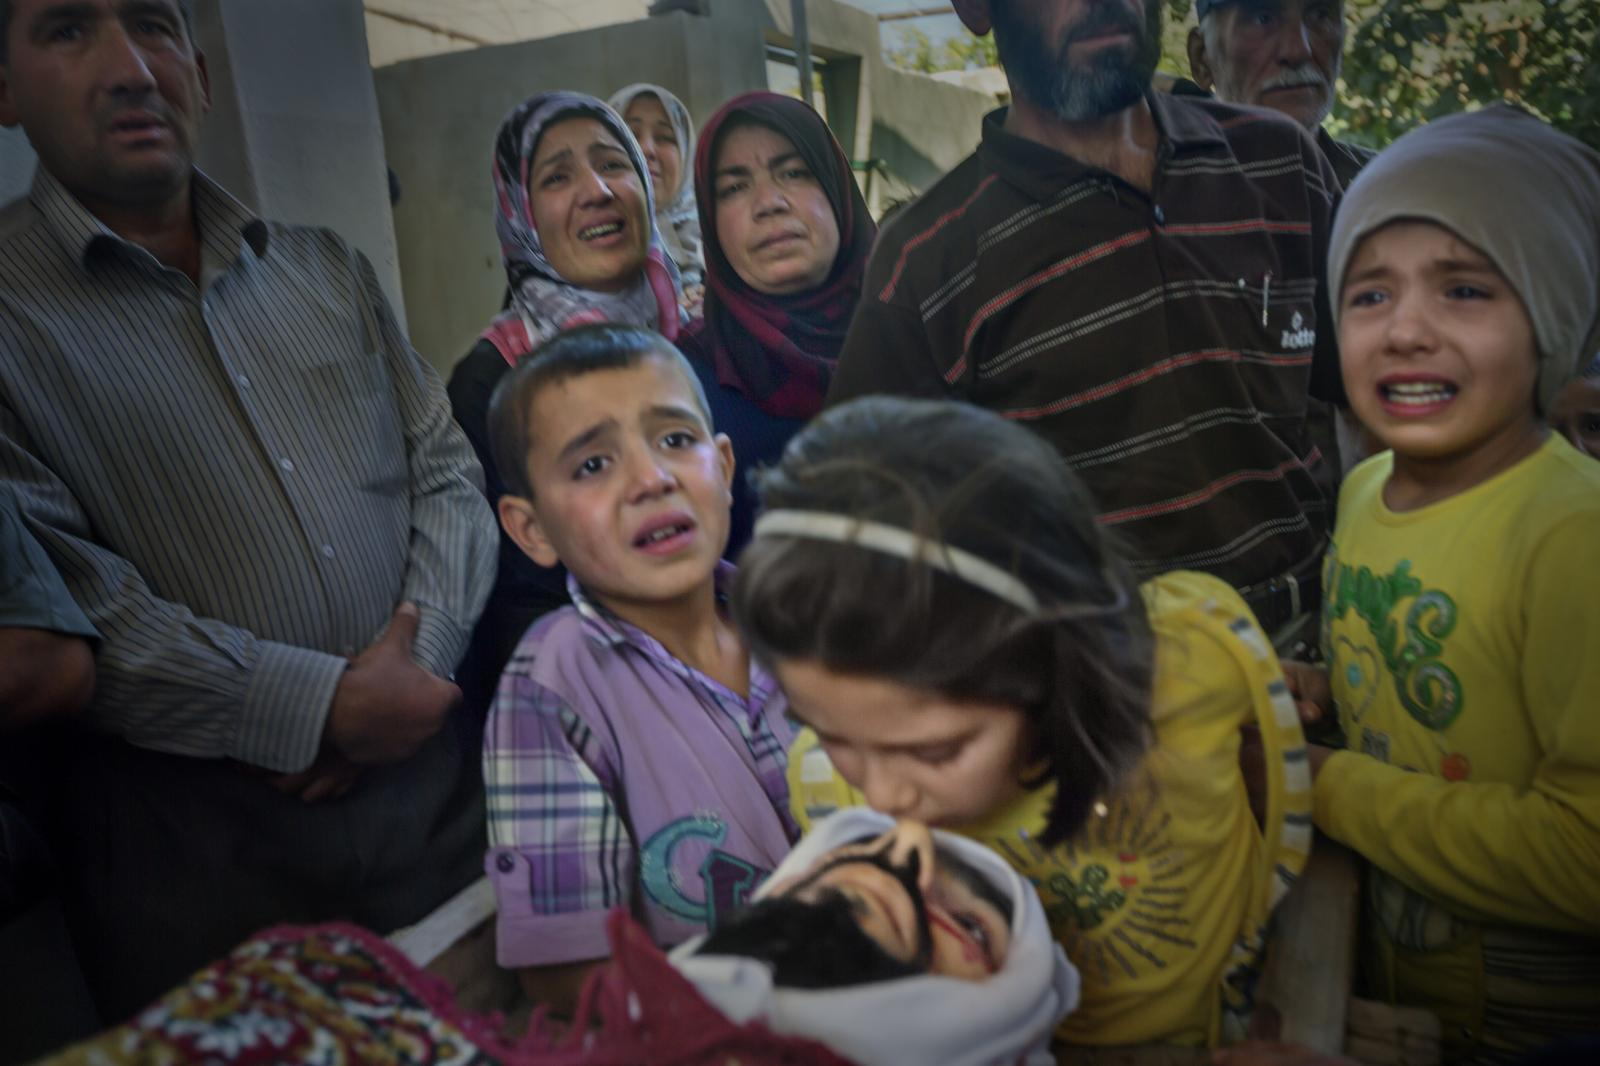 A 5 - year - old girl kisses the corpse of her father , Khaled Kasem Aleiter , killed today by a mortar shell that fell while he was crossing the street in the city of Al Qasir. His other two children and his wife cry over their loss (Syria, 2012)